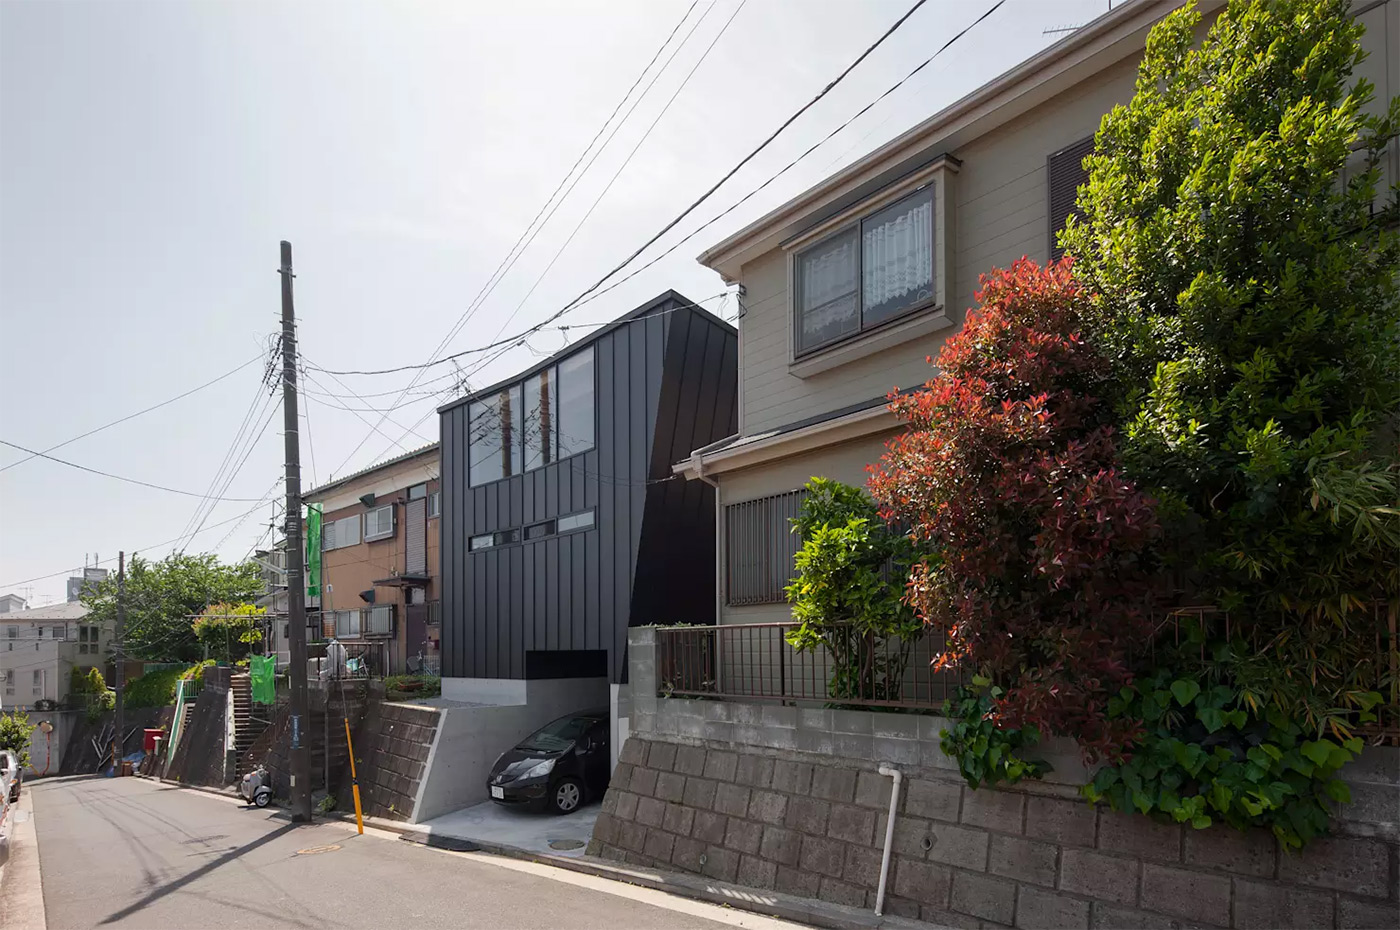 A Japanese Home Designed Around a Climbable Earthquake-Proof Bookshelf